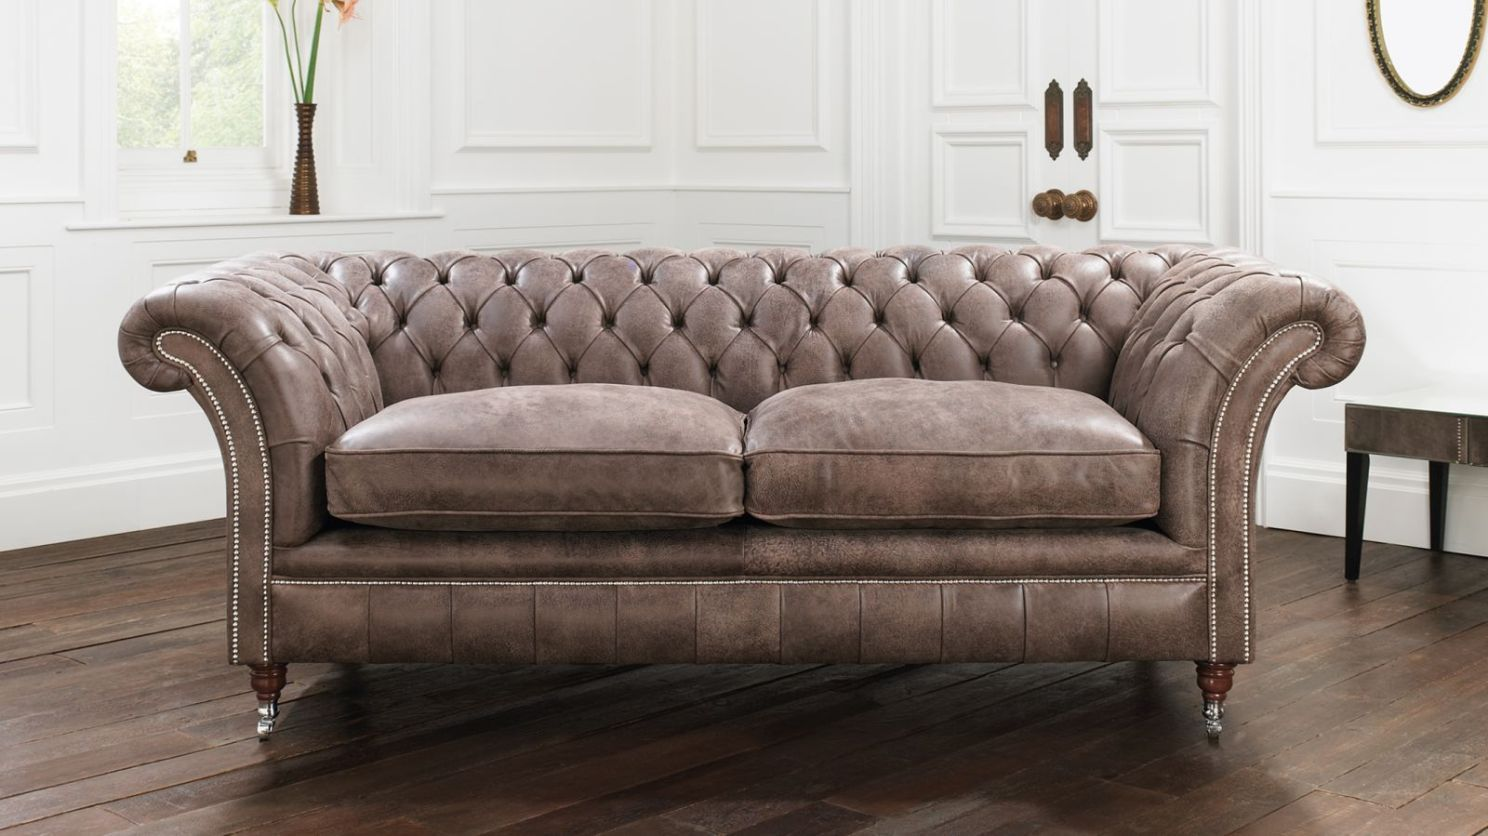 Divano Chesterfield Wiki Studded Leather Sofa Set